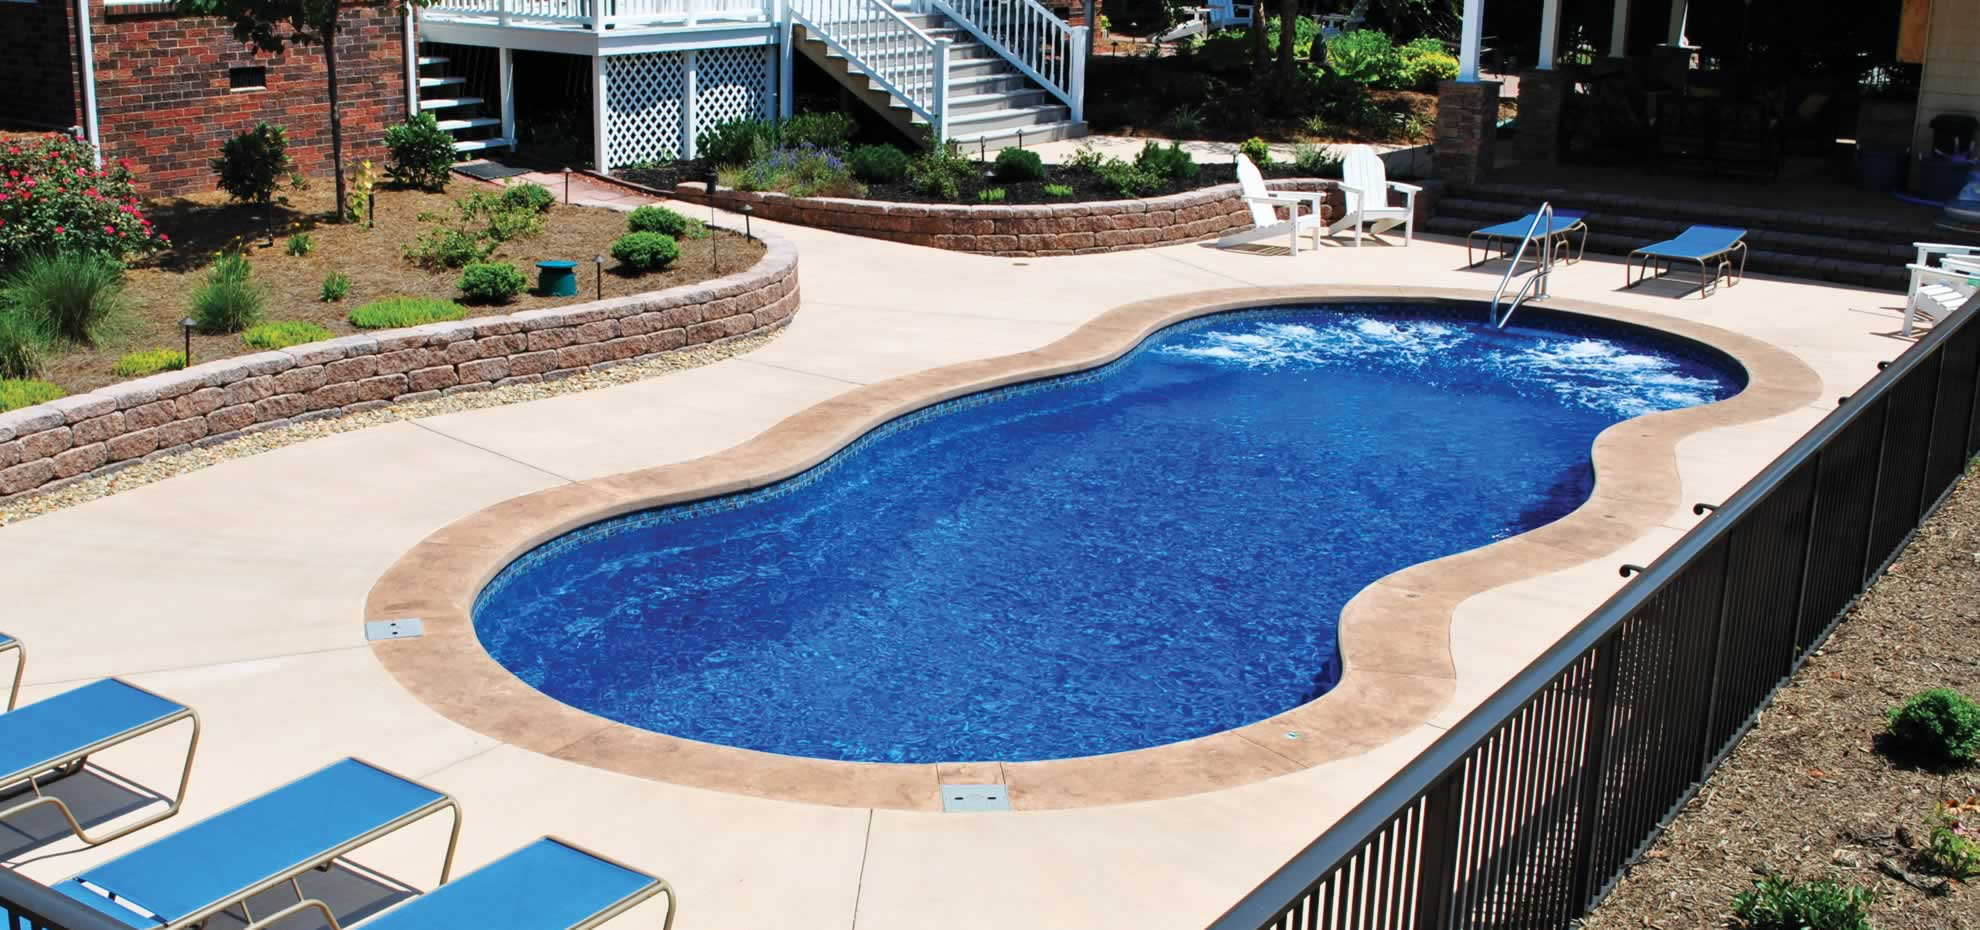 Mediterranean fibreglass pool with coping by Leisure Pools